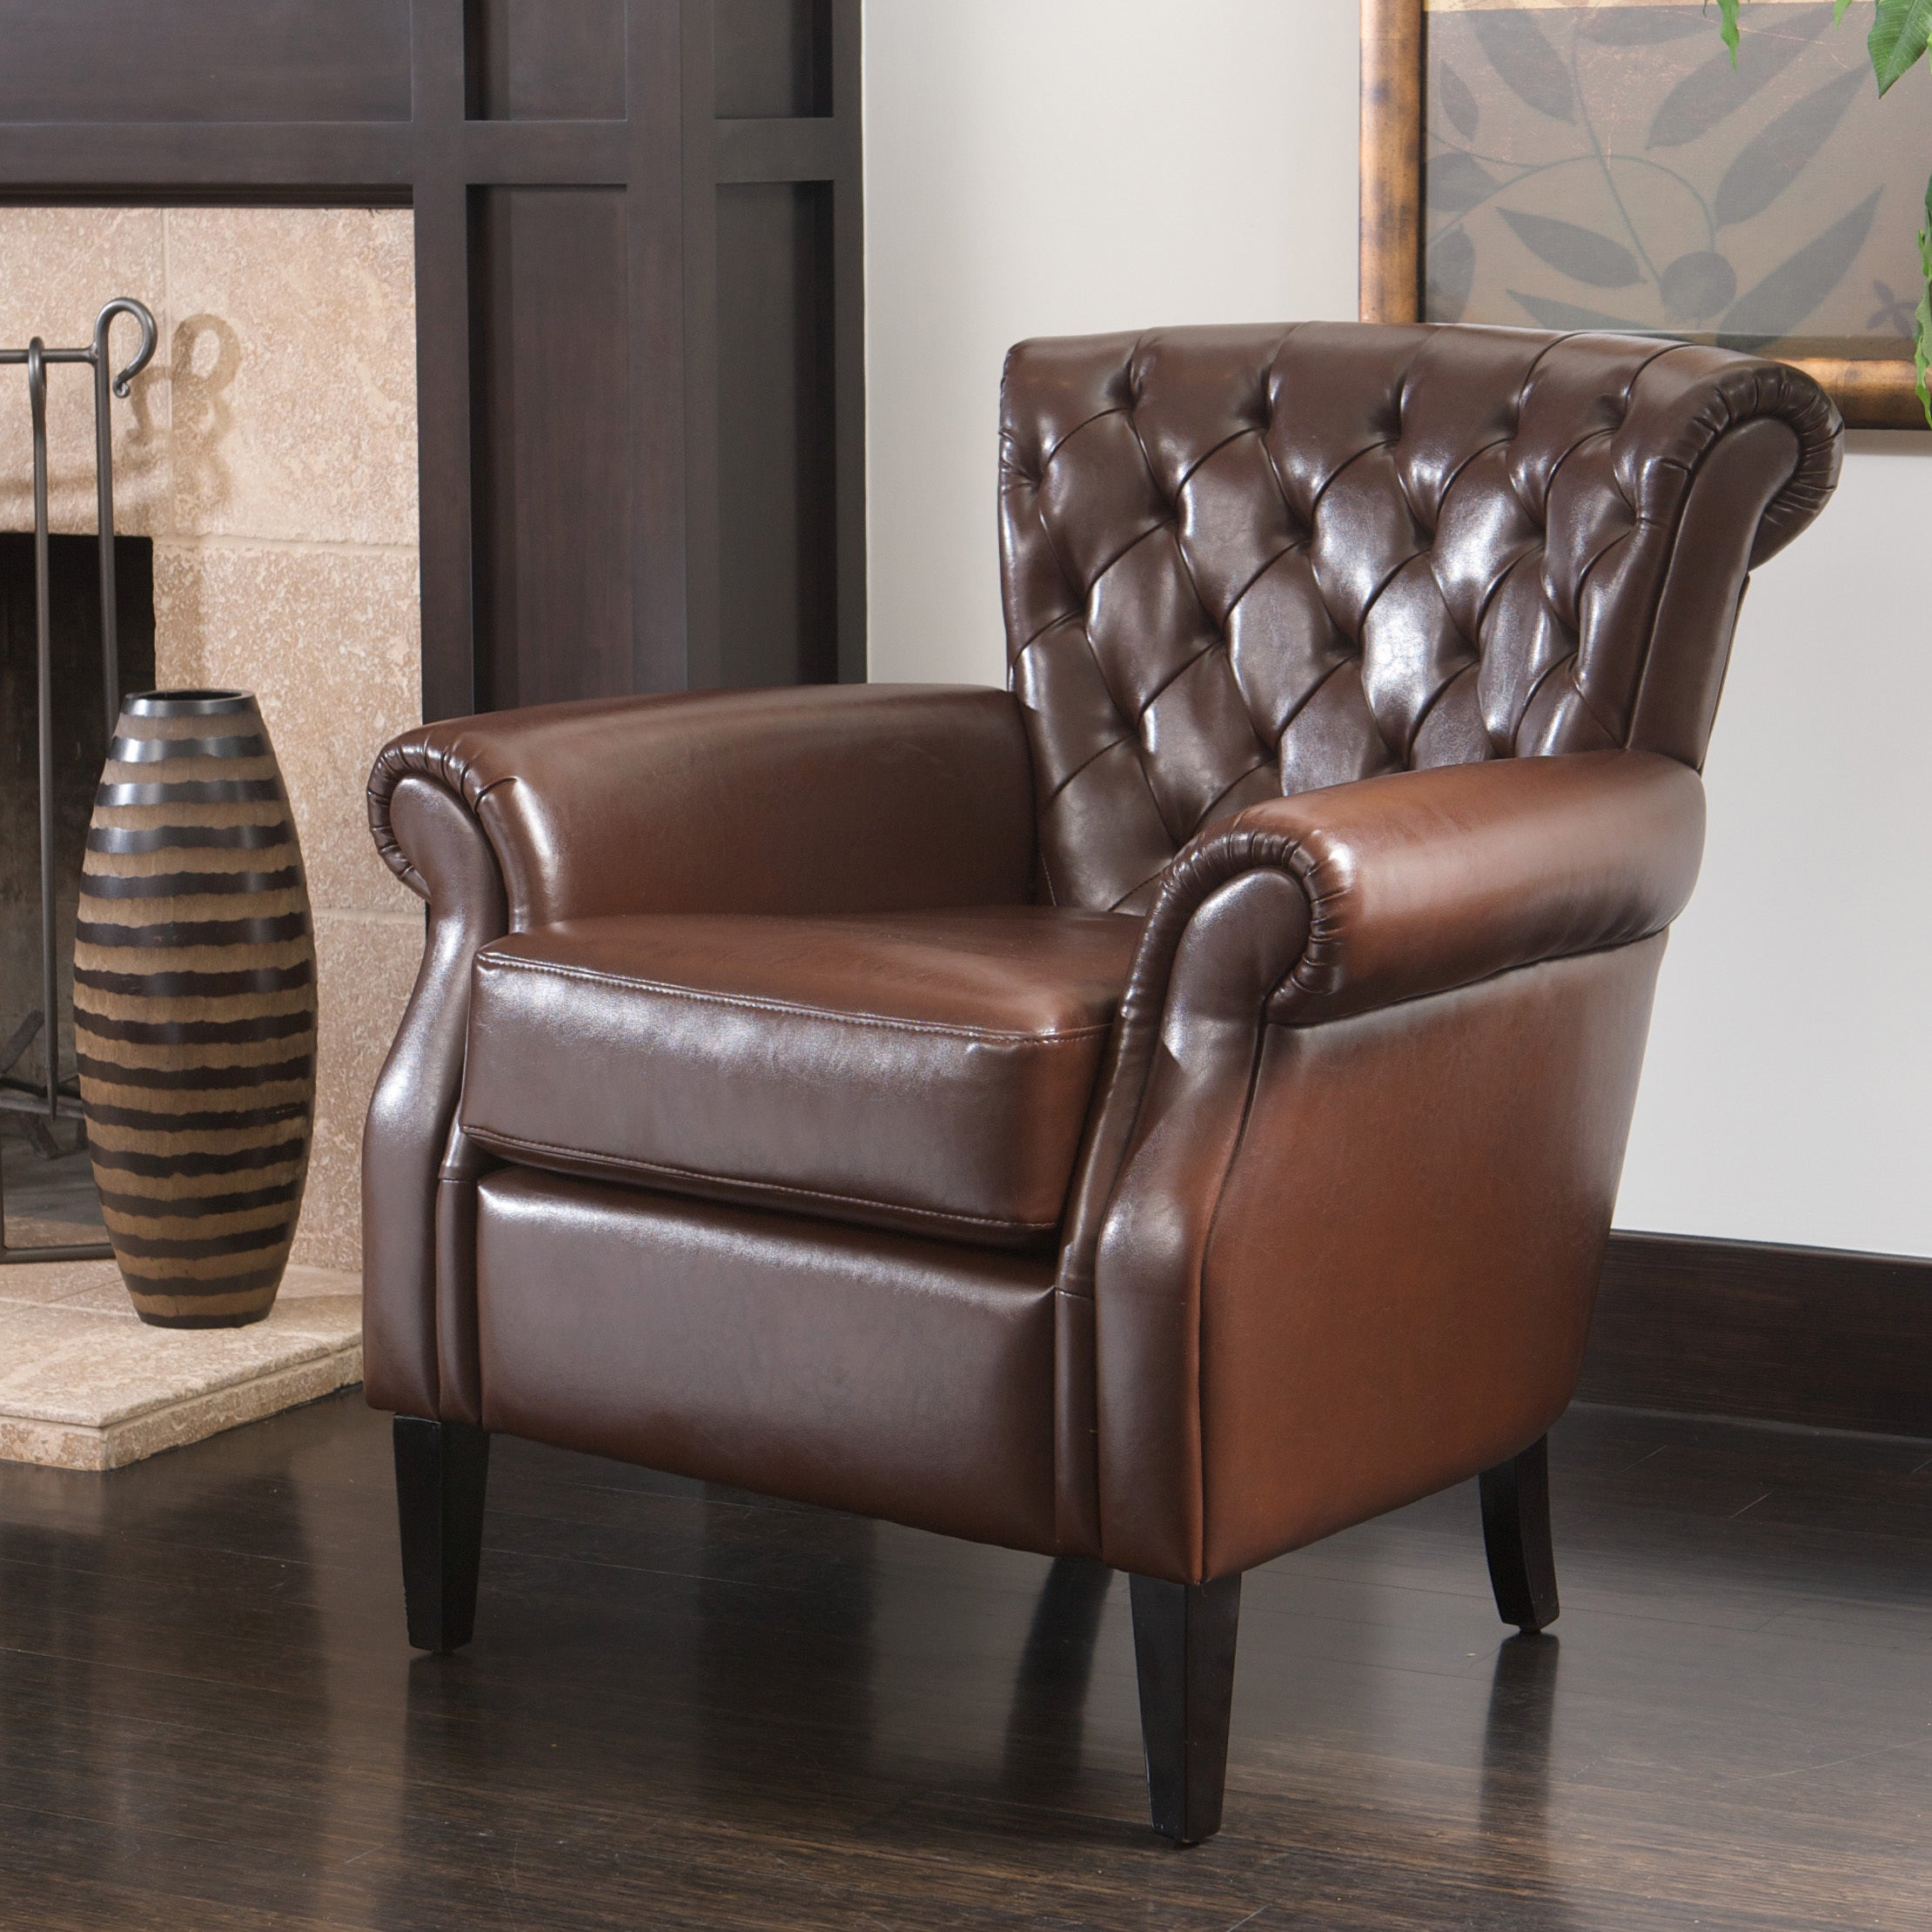 Franklin Brown Tufted Bonded Leather Club Chair By Christopher Knight Home Free Shipping Today 12914867